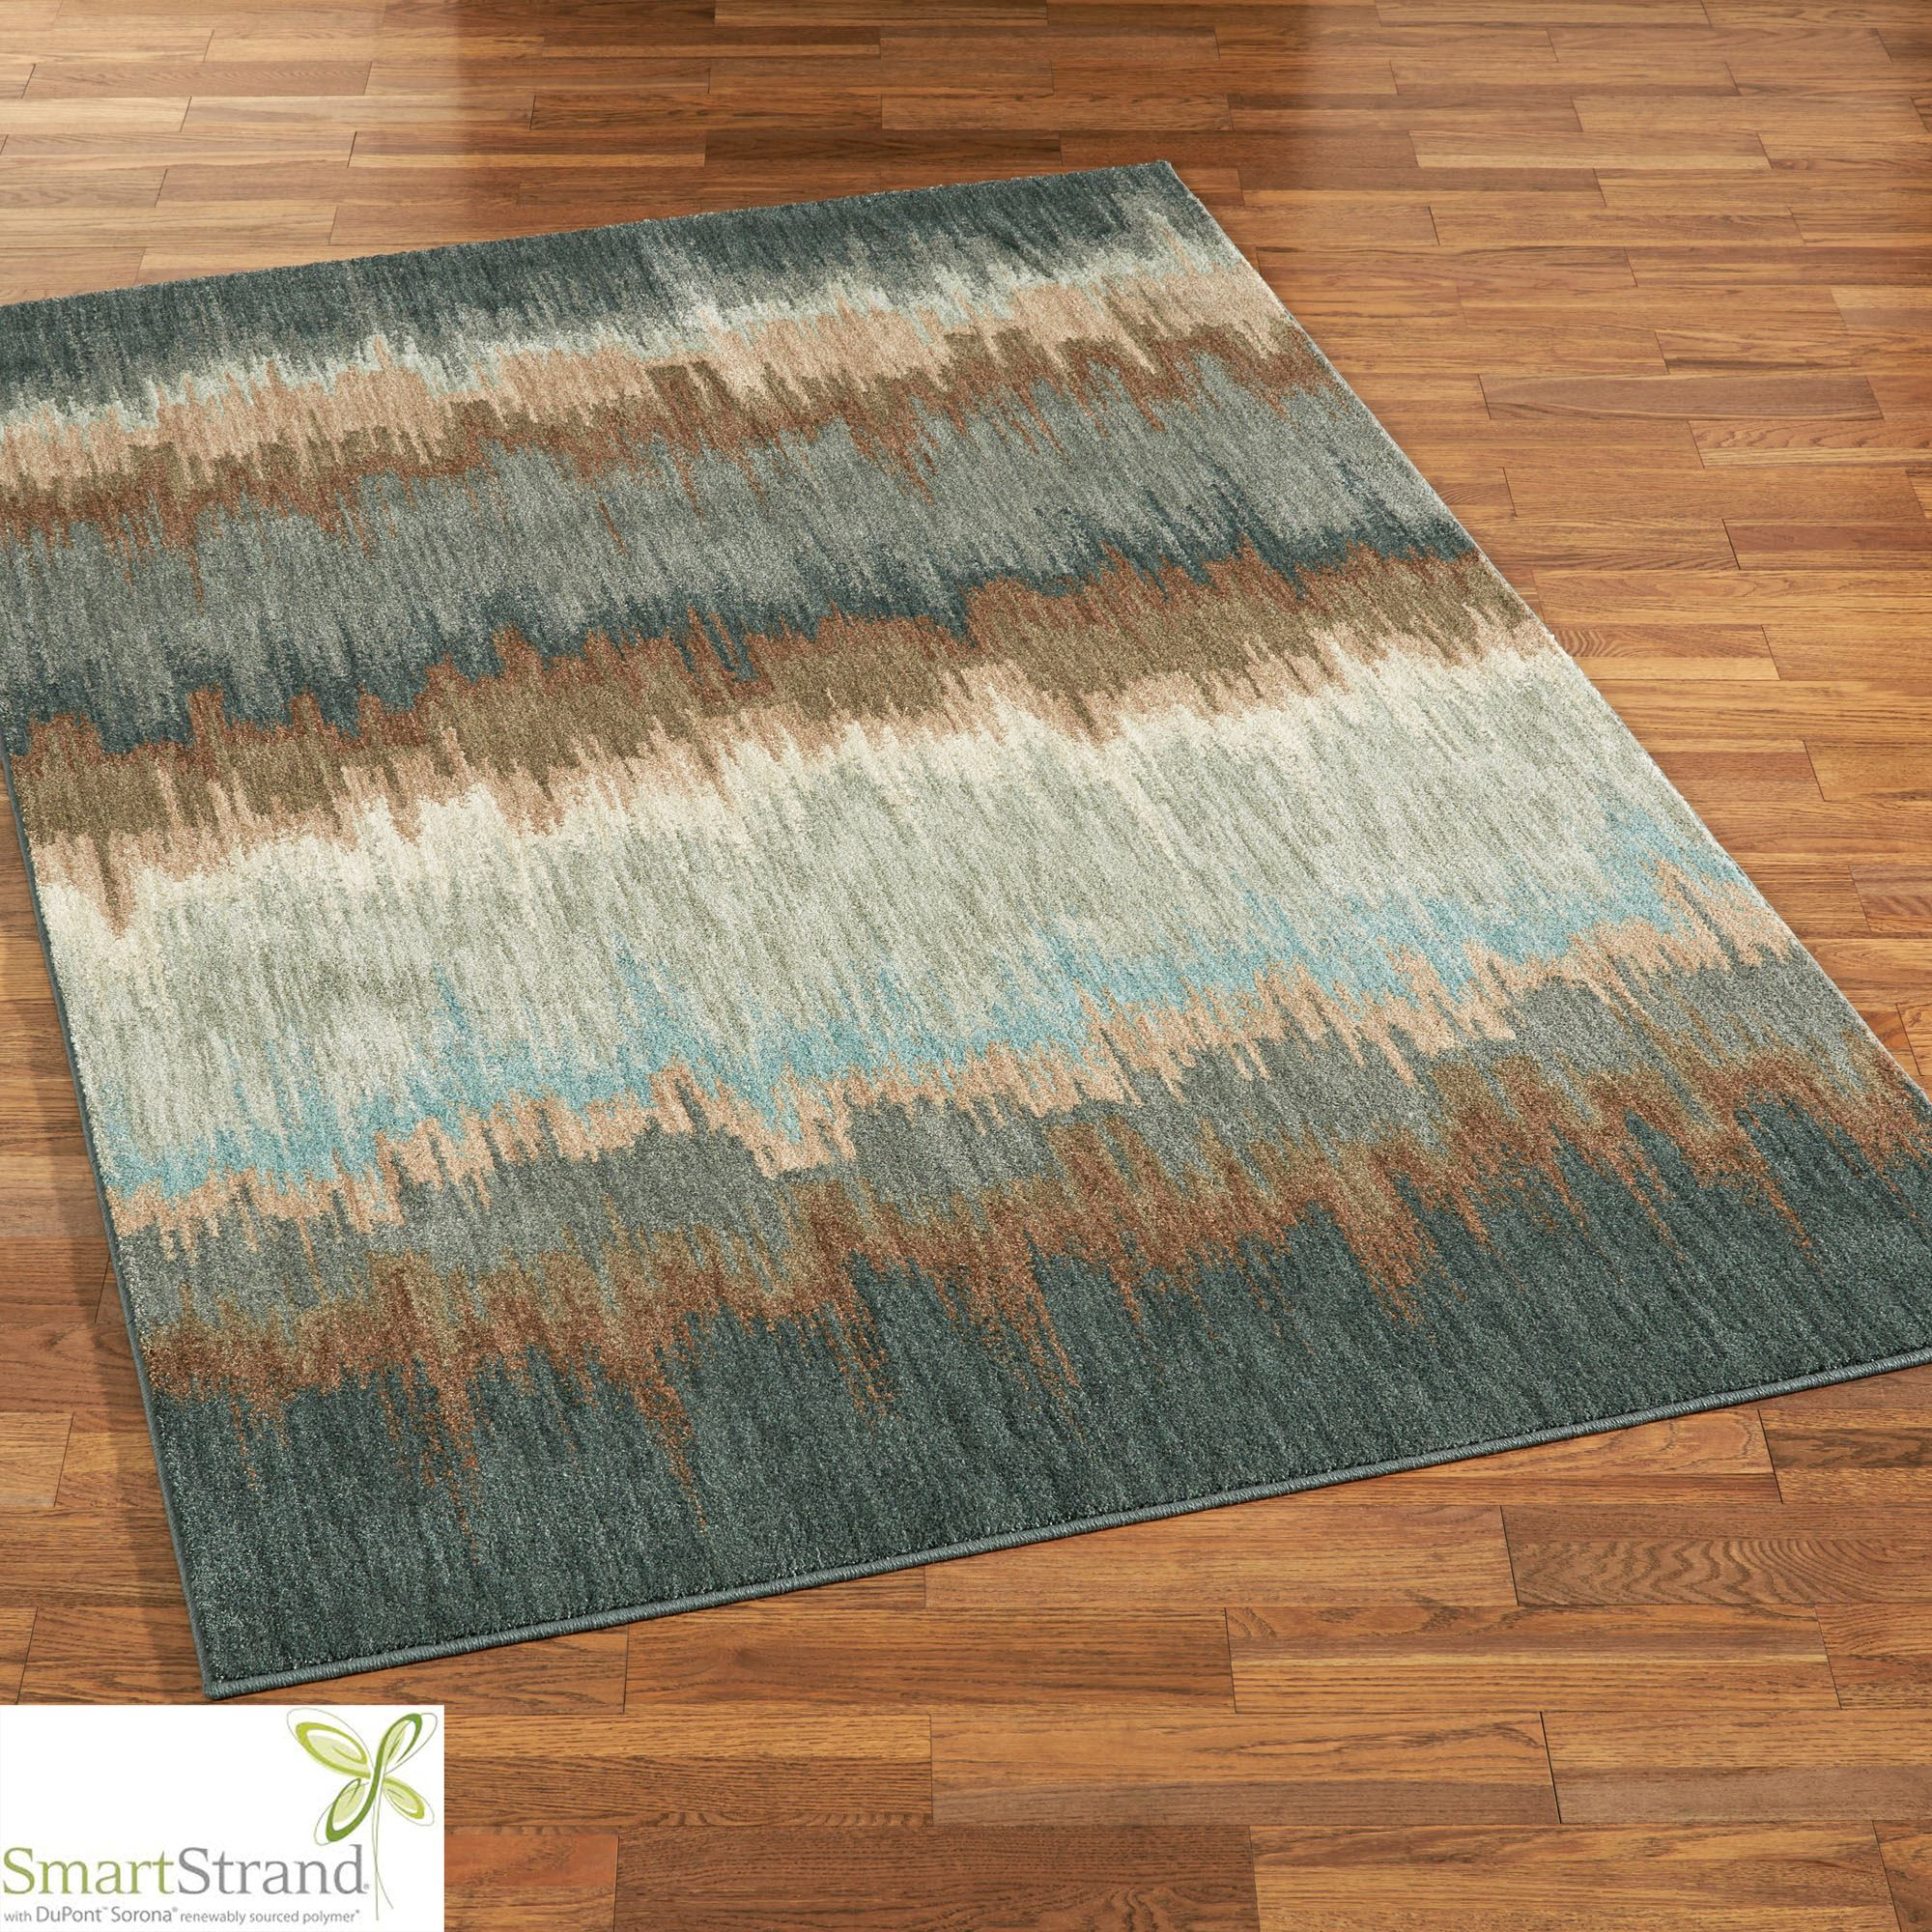 rugs annie rug love indooroutdoor american friendly dog by swedish crystal outdoor style fresh why selke blue indoor beauty we pet crystalswedishblueivoryindooroutdoorrug